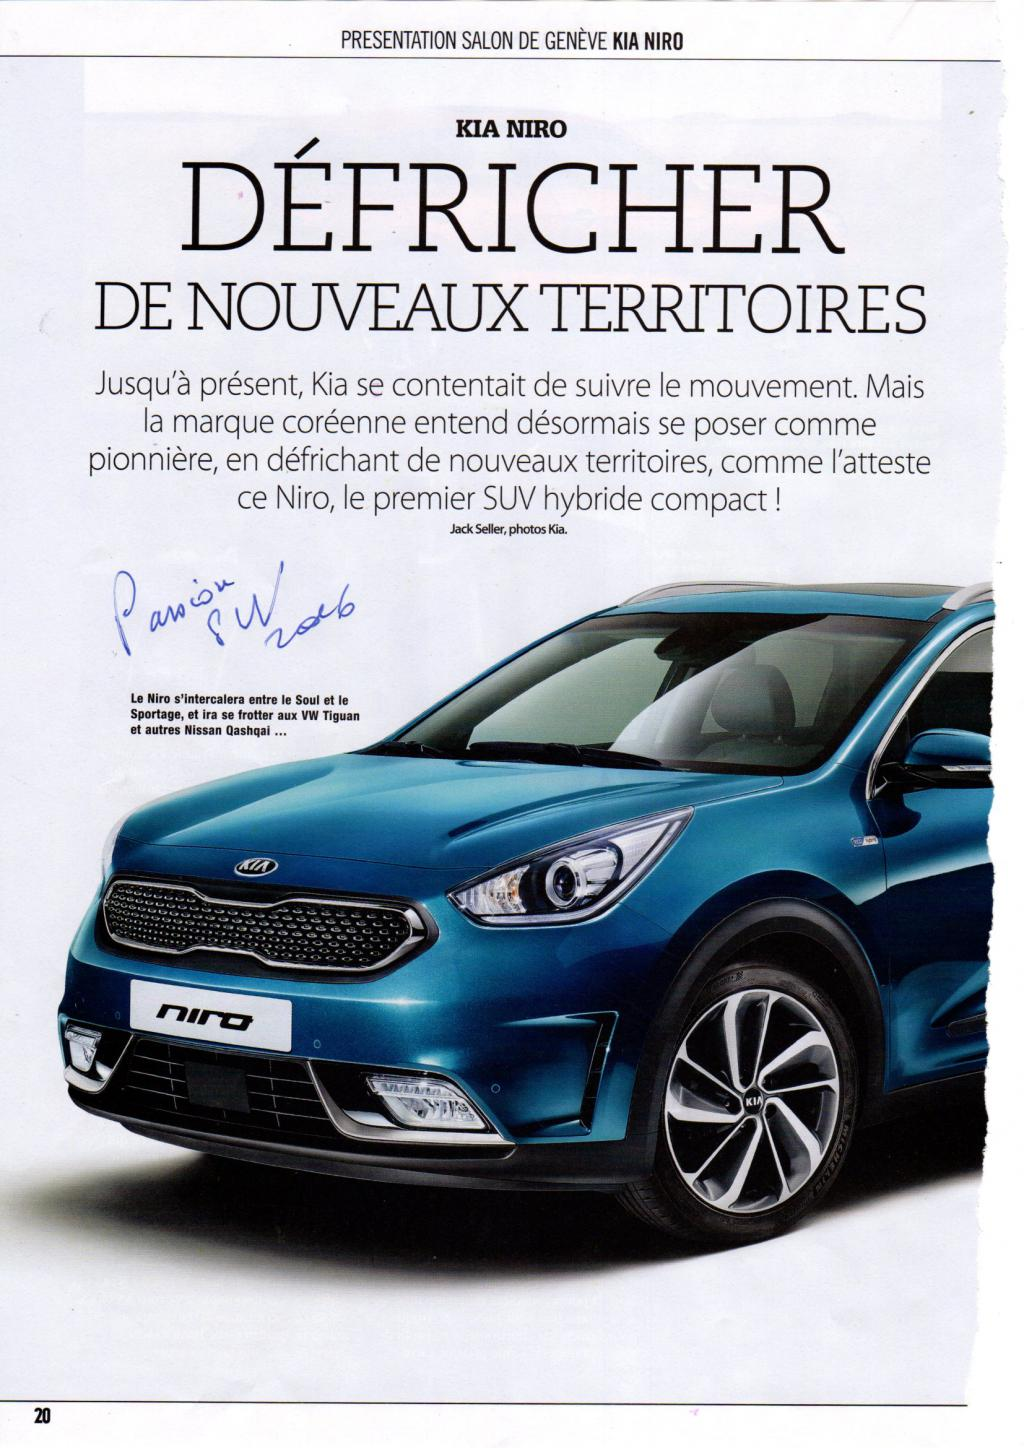 passion suv kia niro un hybride pour d fricher de nouveaux territoires. Black Bedroom Furniture Sets. Home Design Ideas